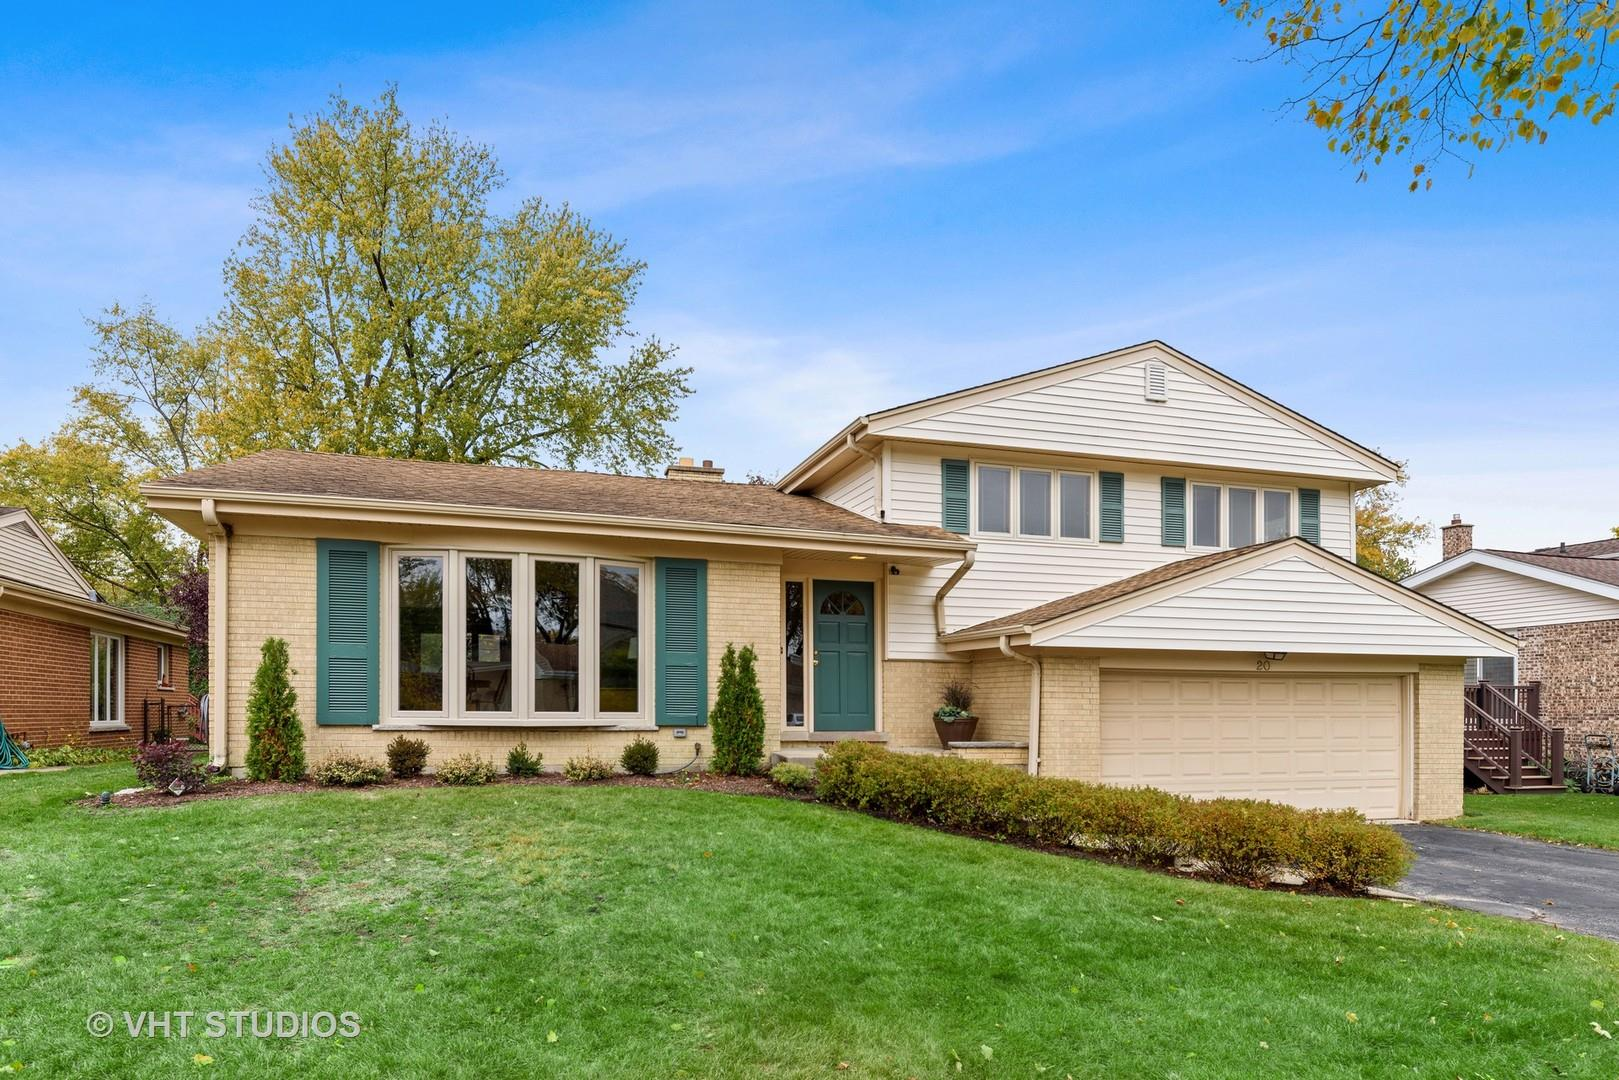 20 N Rammer Avenue, Arlington Heights, IL 60004 - #: 10937671